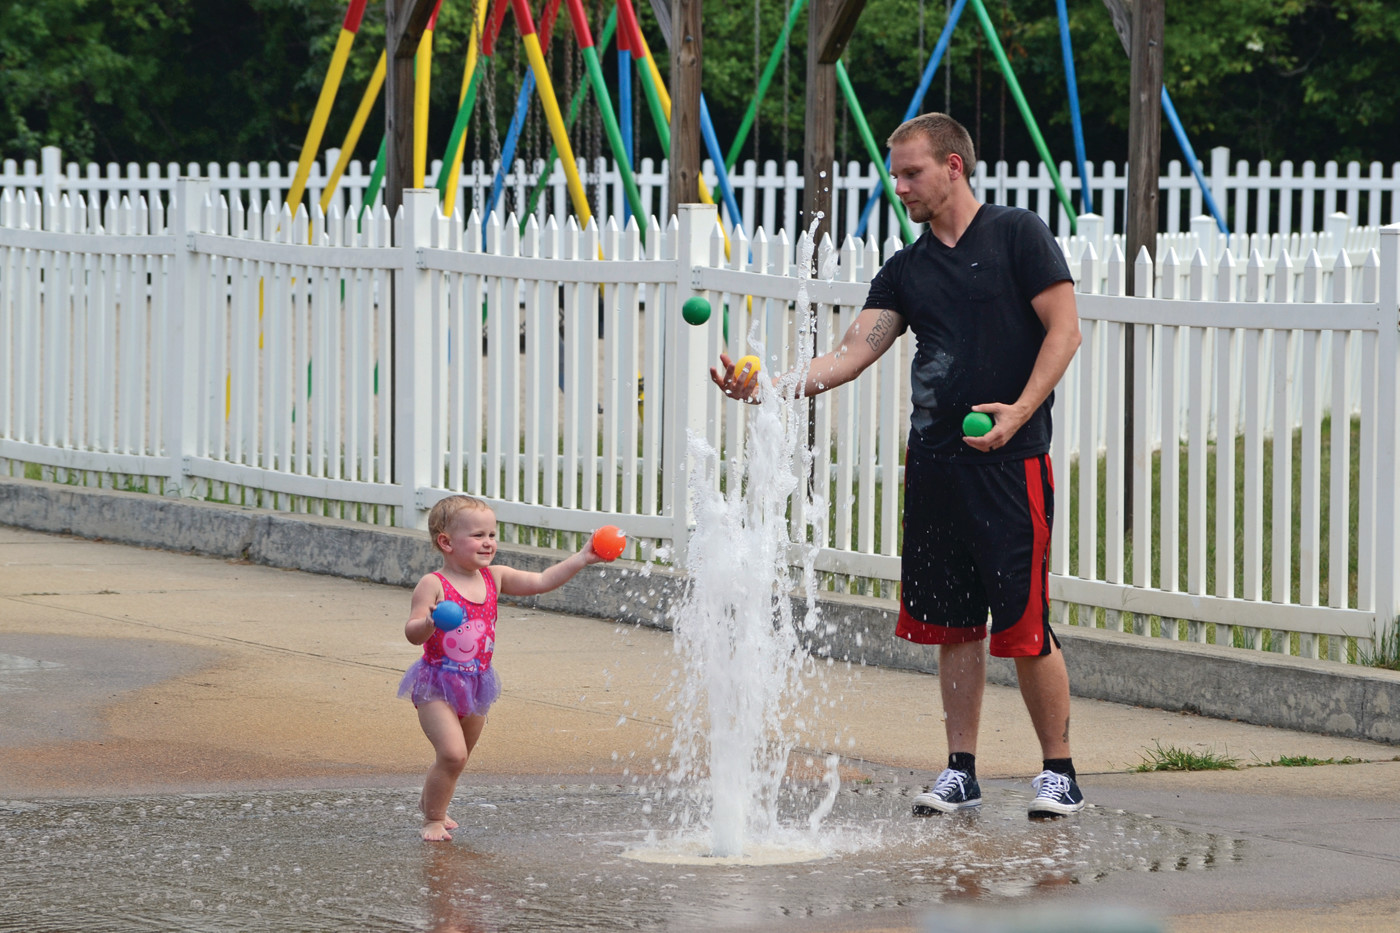 COOLING OFF: Nick Cheshier played catch with little Sophia Jones Thursday afternoon at the Kent County YMCA spray park.